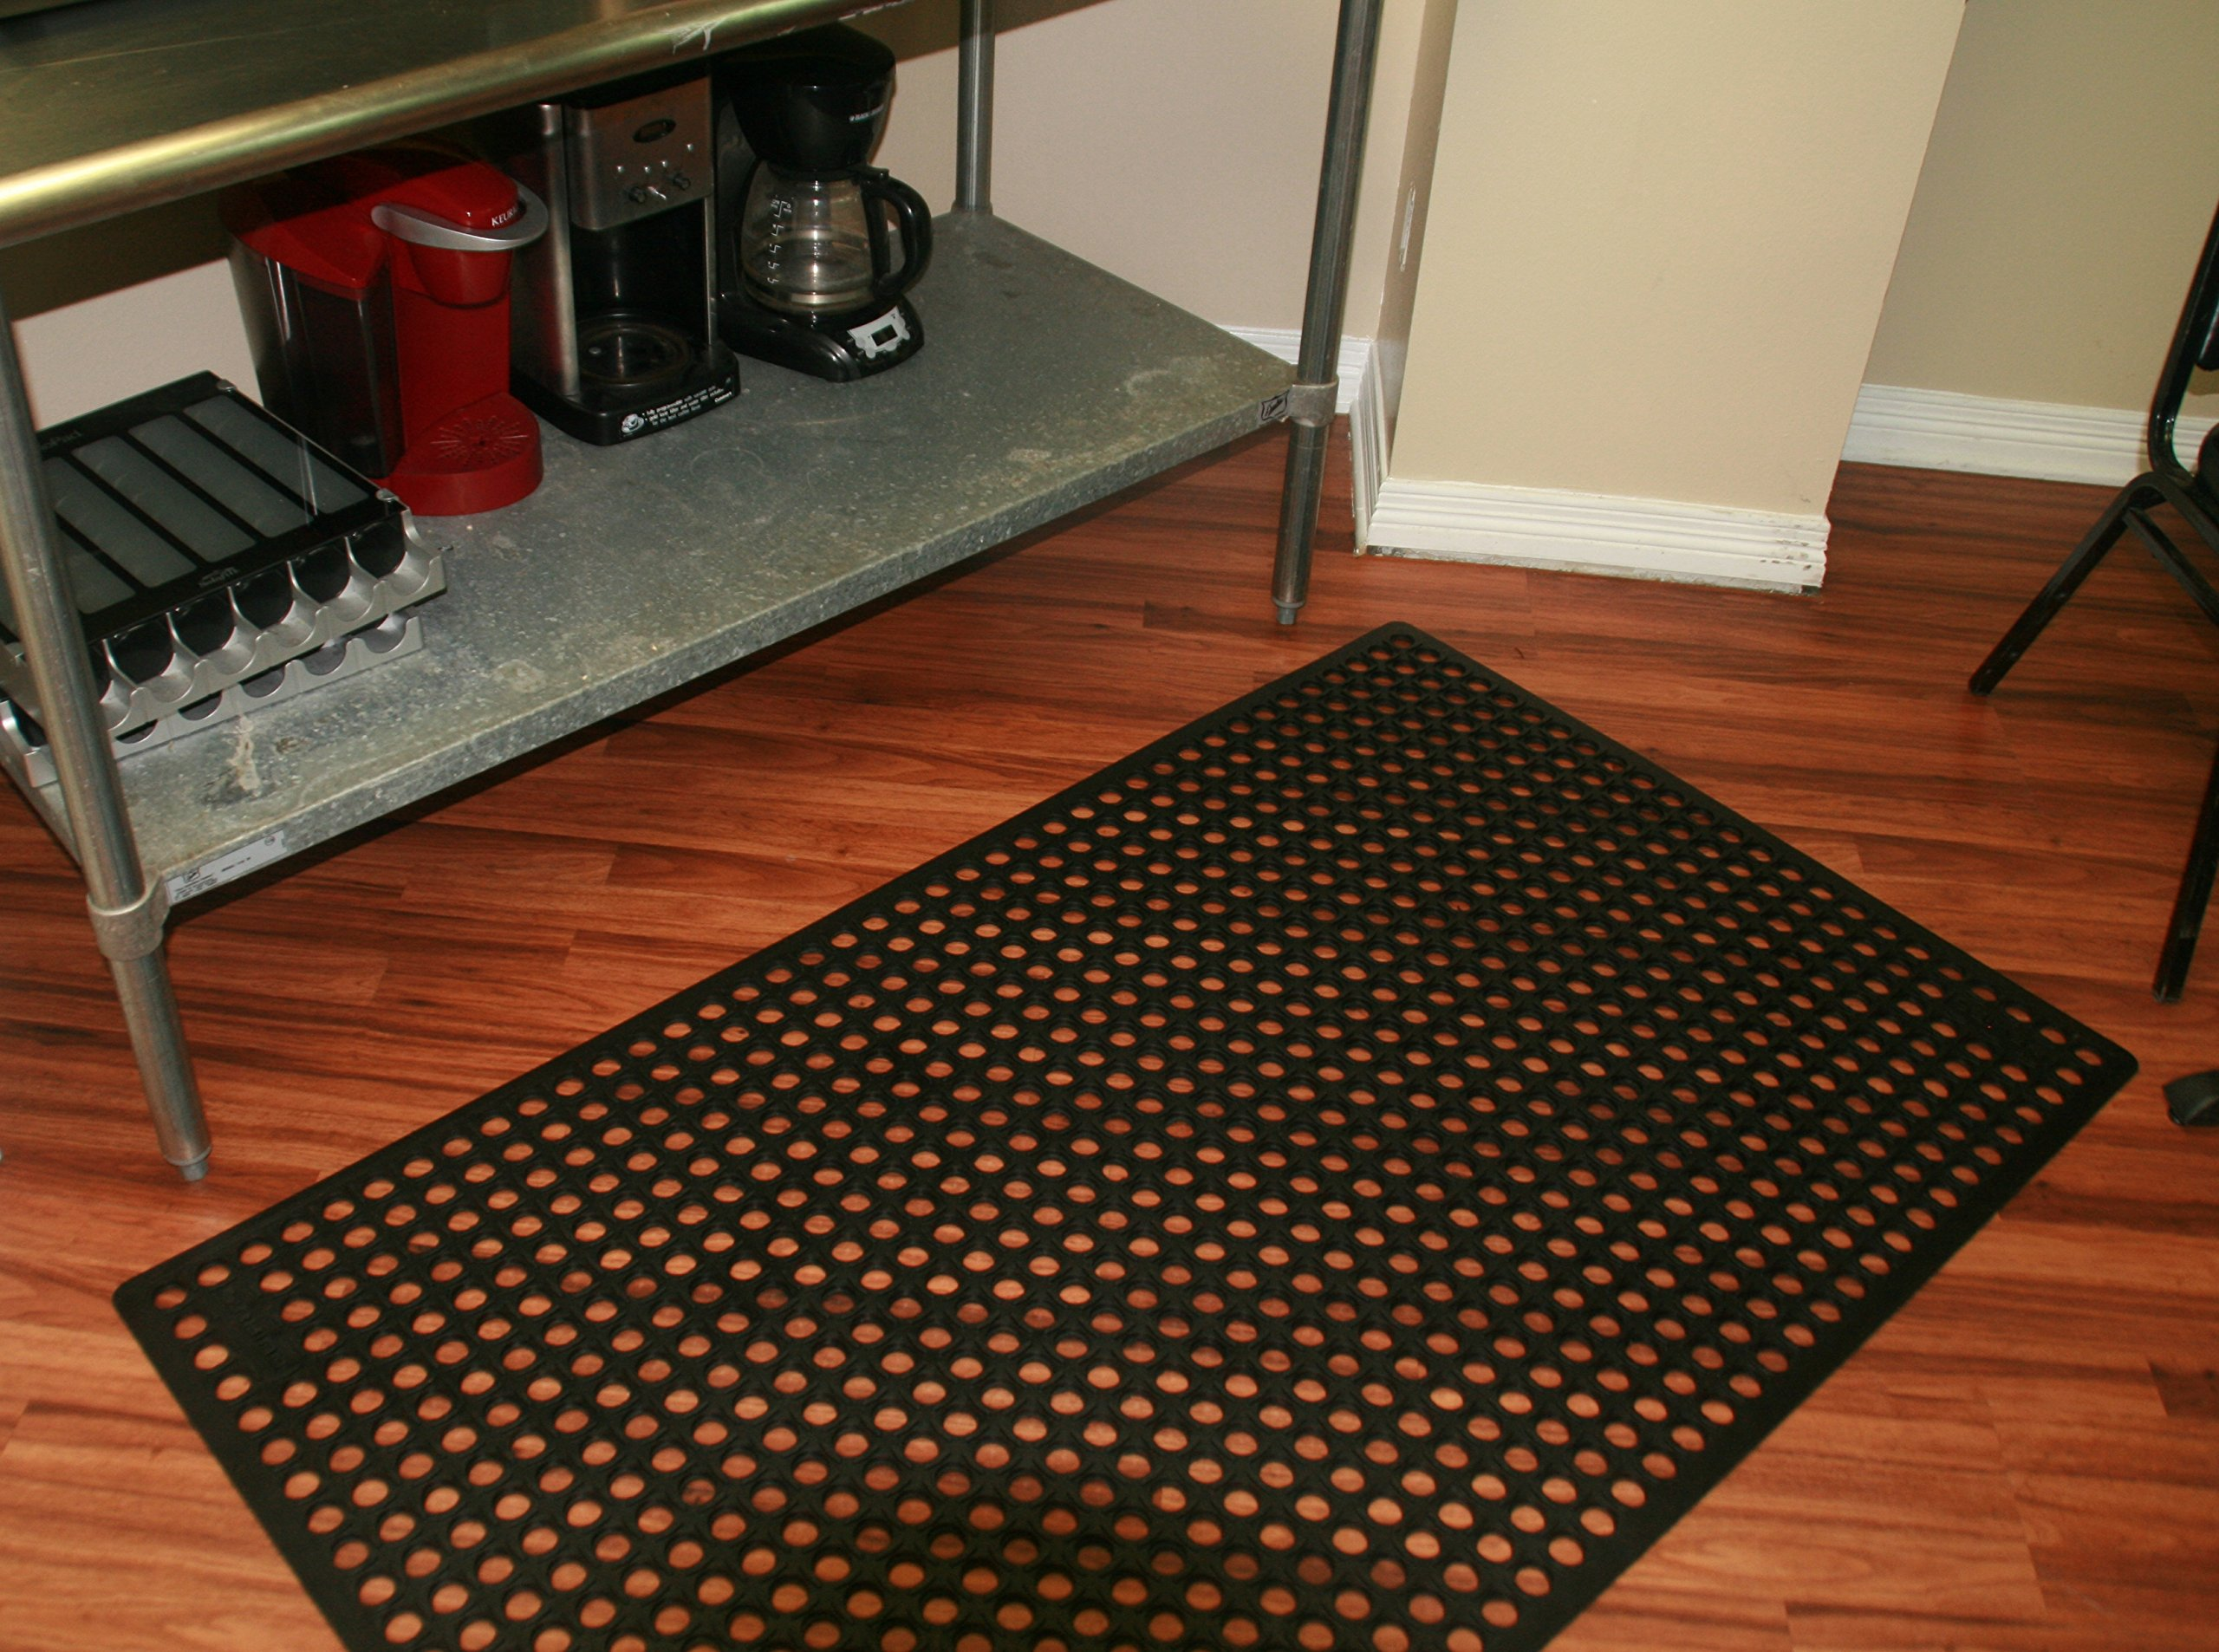 Rhino Mats KCT-3660B K-Series Comfort Tract Anti-fatigue Drain-thru Mat, 3' x 5', Black by Rhino Mats (Image #9)